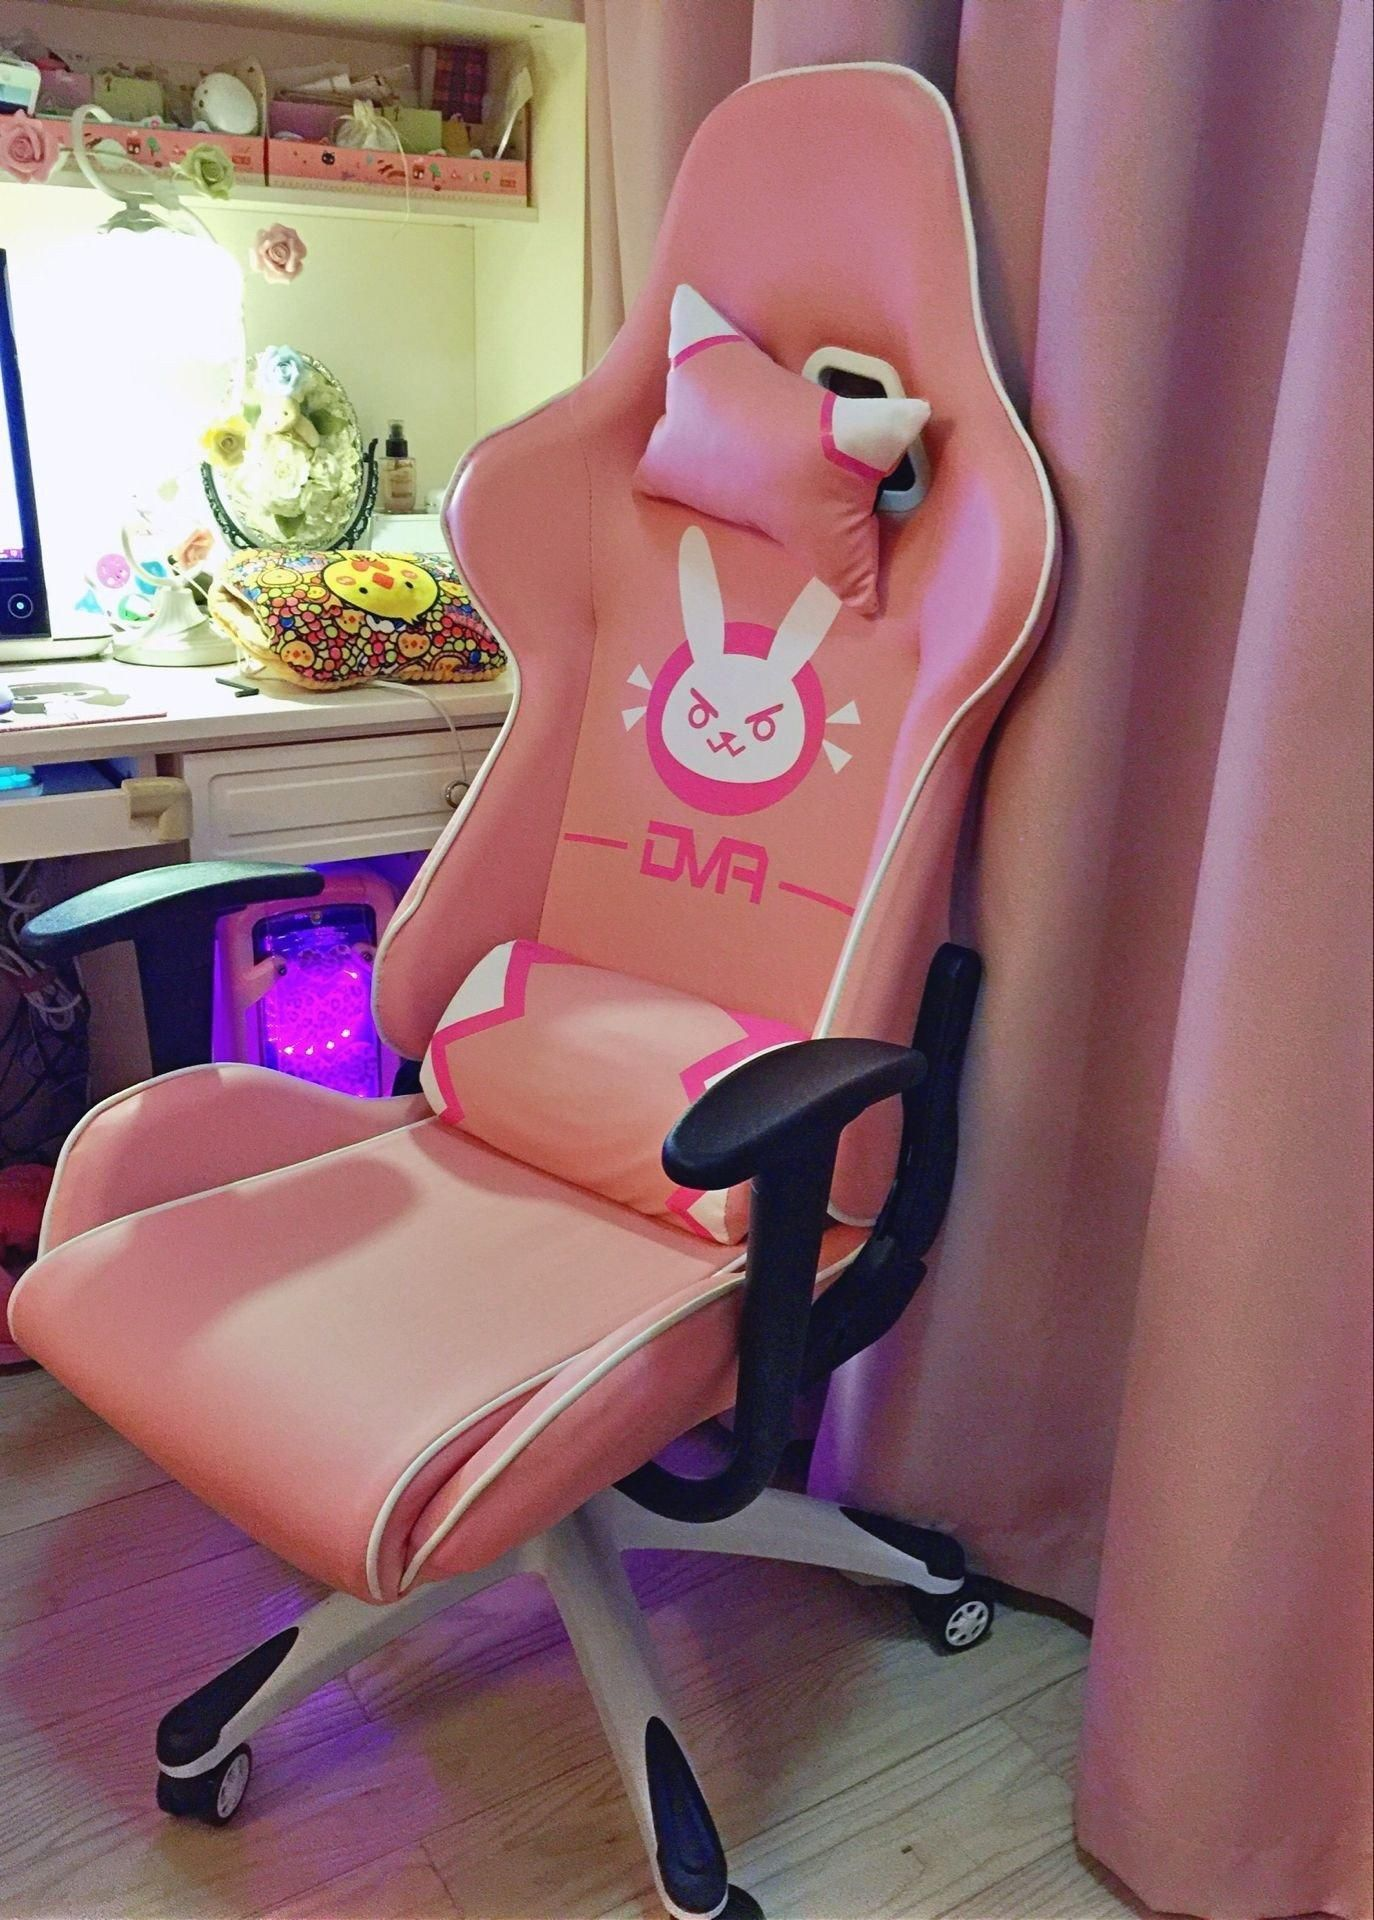 Overwatch Dva Bunny Gaming Chair Sd02353 In 2018 Geeky Dxracer Racing Series Oh Rv001 Nv Black Violed